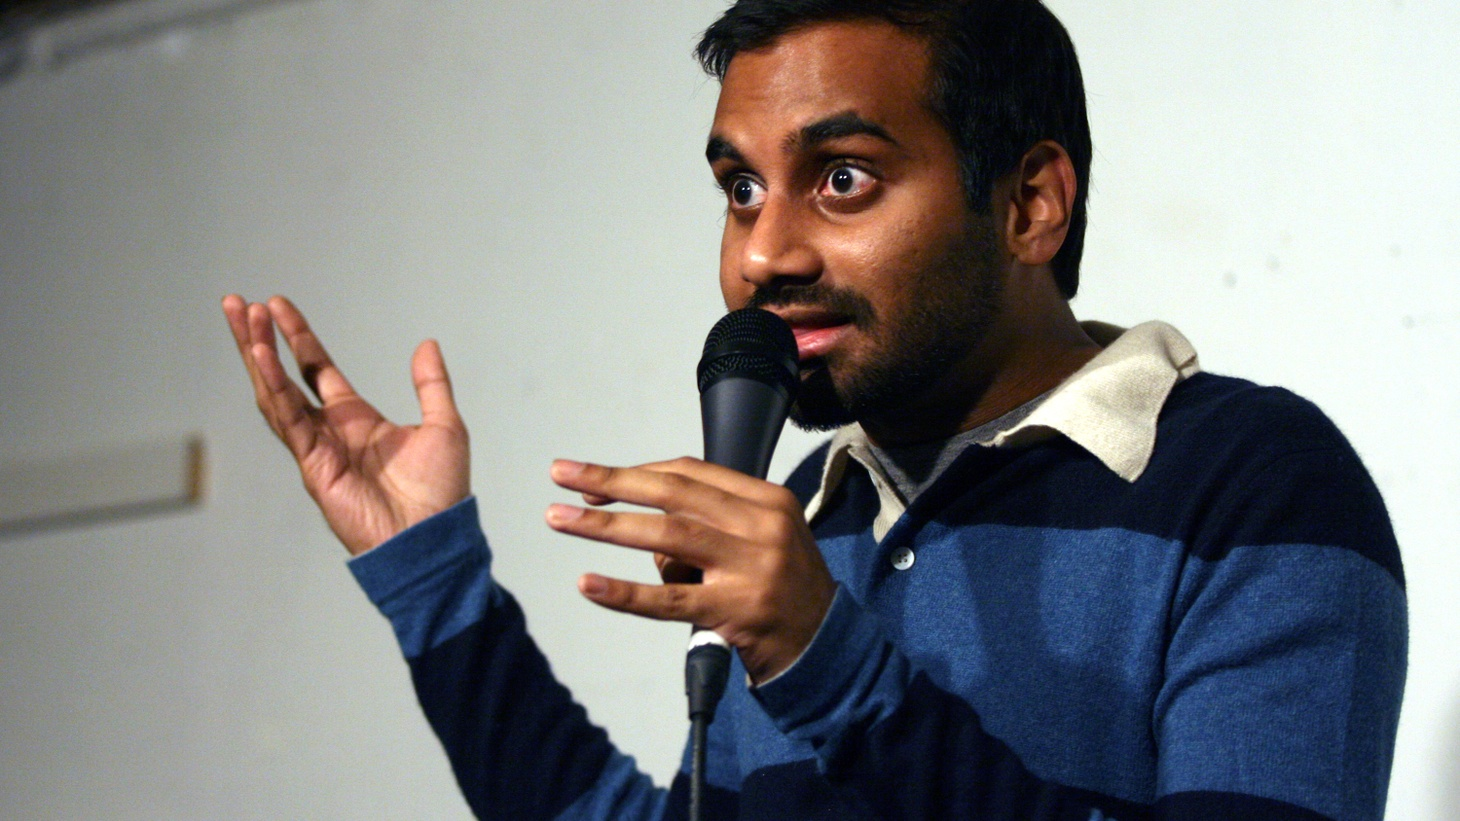 Aziz Ansari is just one of three comedians who've sold out Madison Square Garden in the past three years. Only three comedians had ever sold out the Garden before 2009. Sure, comedy and comedians were really big in the days of Roseanne, Cosbyand Home Improvement. Things got tough for them, however, when the sitcom went out of favor.